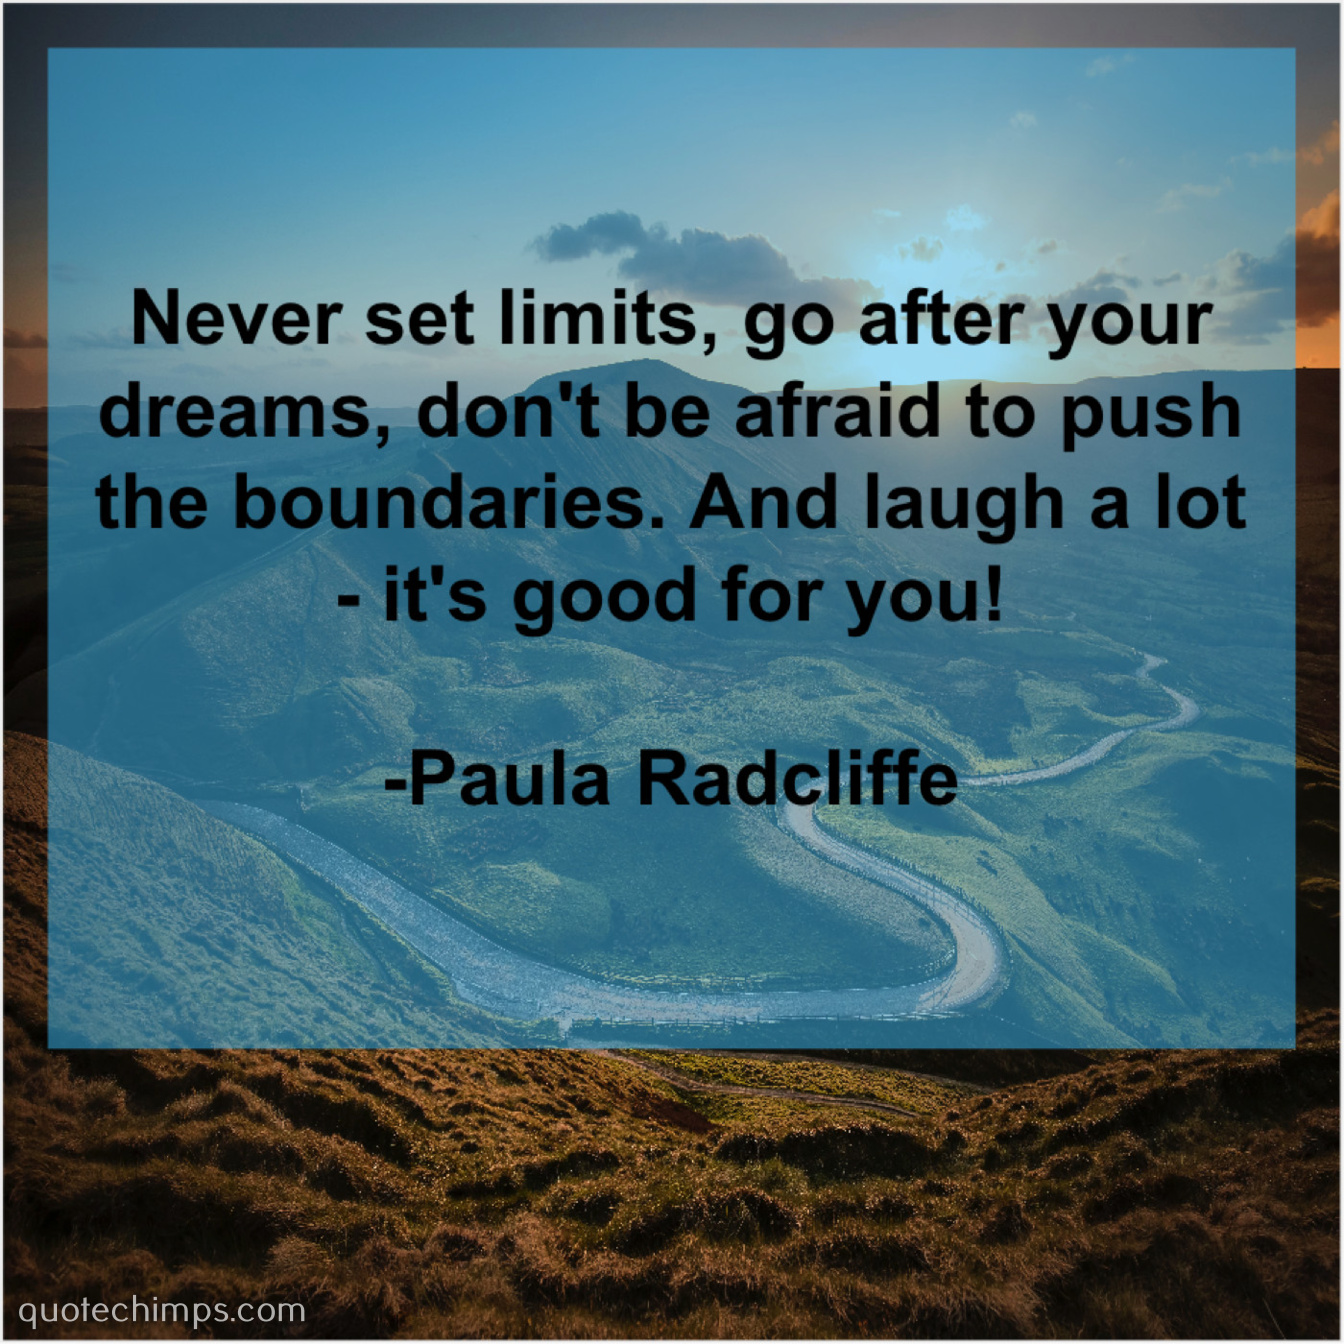 Paula Radcliffe | | Quote Chimps